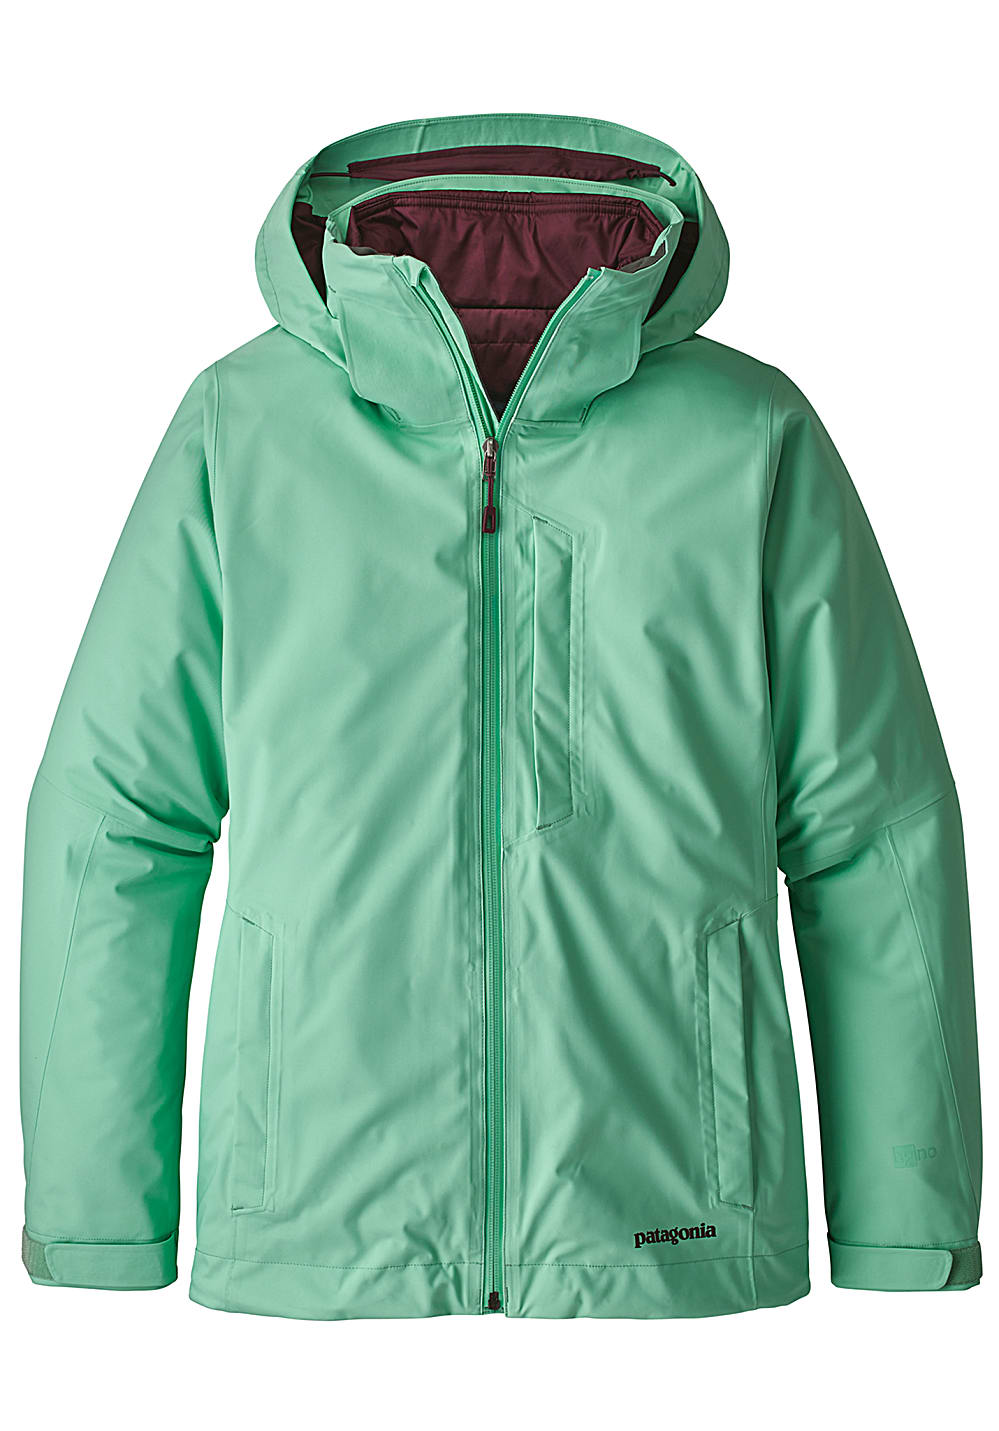 PATAGONIA 3-in-1 Snowbelle - Ski Jacket for Women - Green - Planet ... 3c23c79ad